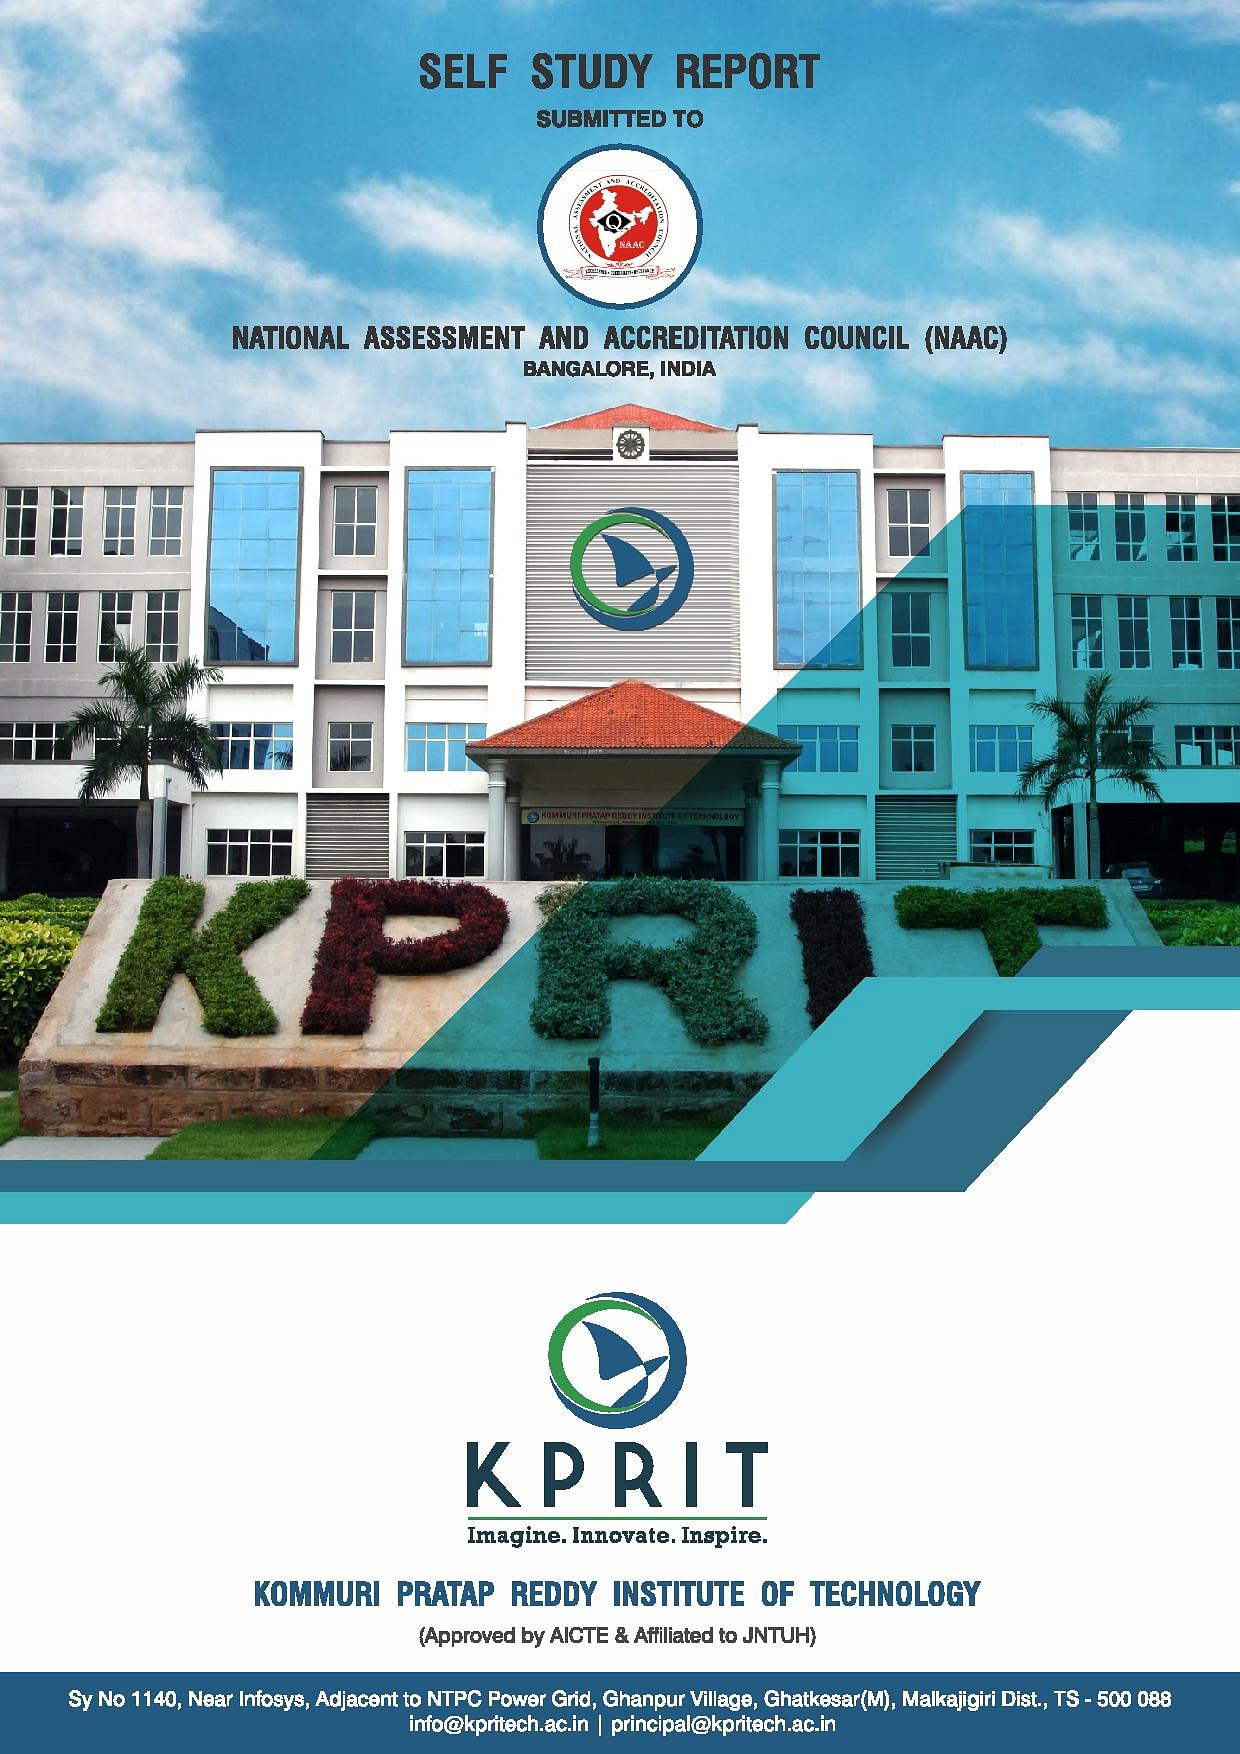 Kommuri Pratap Reddy Institute of Technology - [KPRIT], Ghatkesar